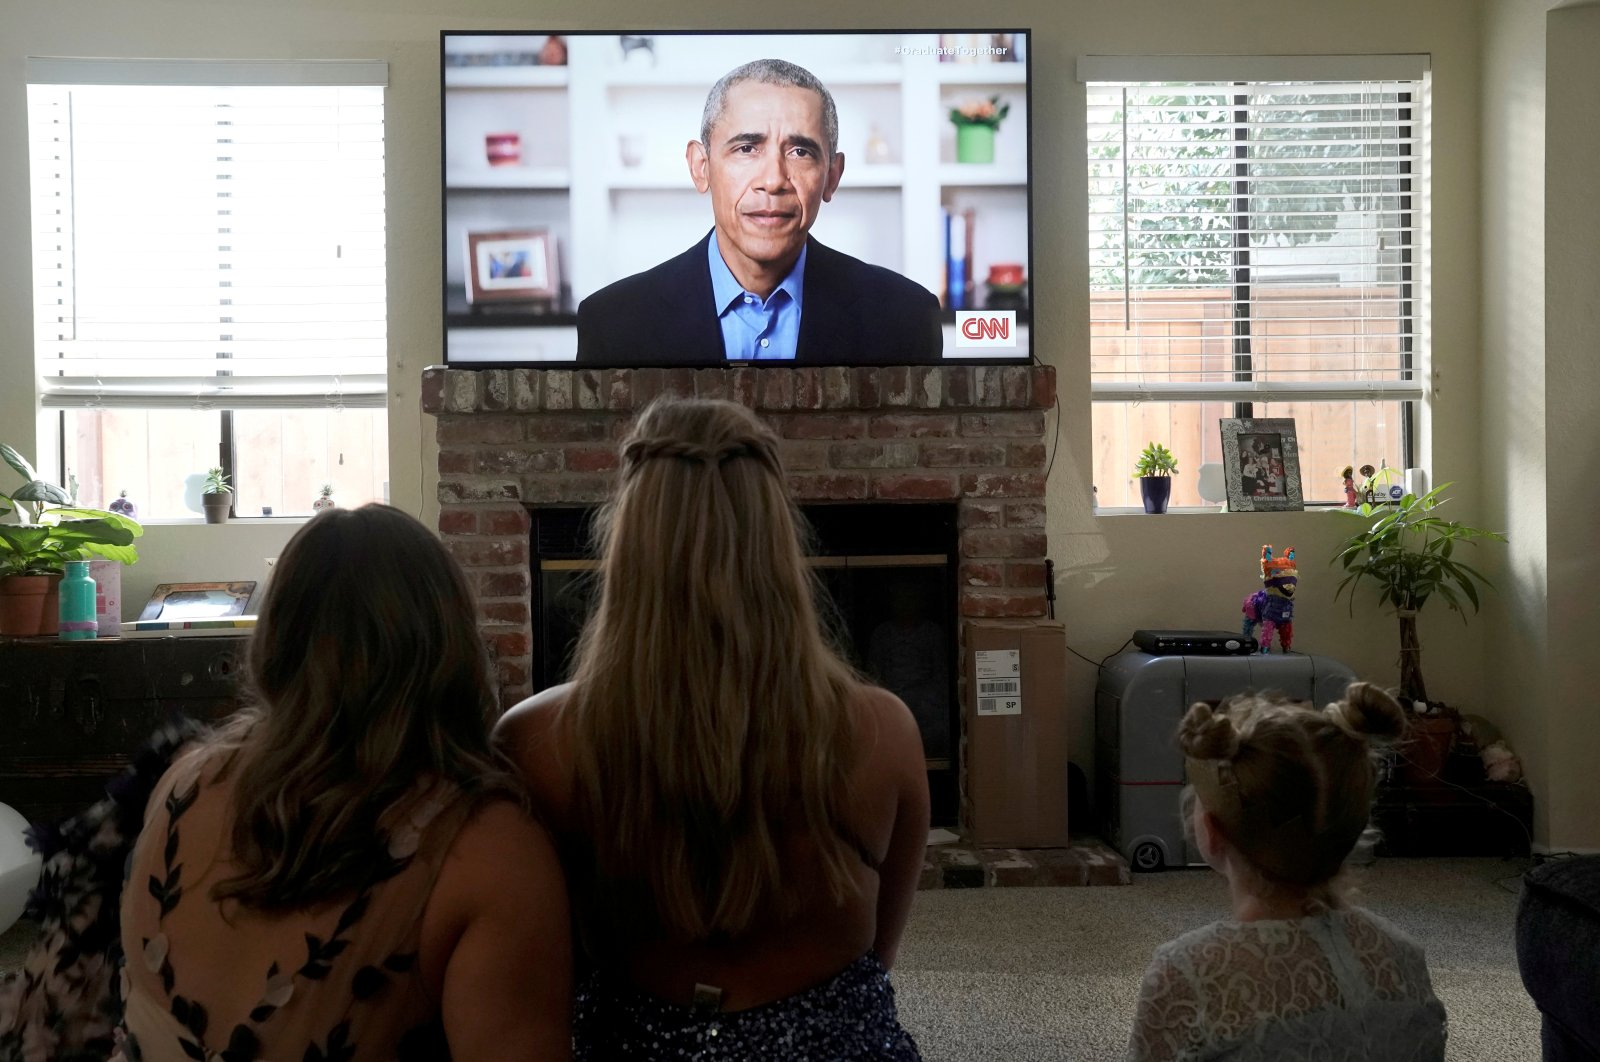 Torrey Pines High School graduating student Phoebe Seip (C), 18, and her sisters Sydney (L), 22, and Paisley, 6, watch former U.S. President Barack Obama deliver a virtual commencement address to millions of high school seniors who will miss graduation ceremonies due to the COVID-19 outbreak, while celebrating Phoebe's canceled prom night at home in San Diego, California, U.S., May 16, 2020. (Reuters Photo)